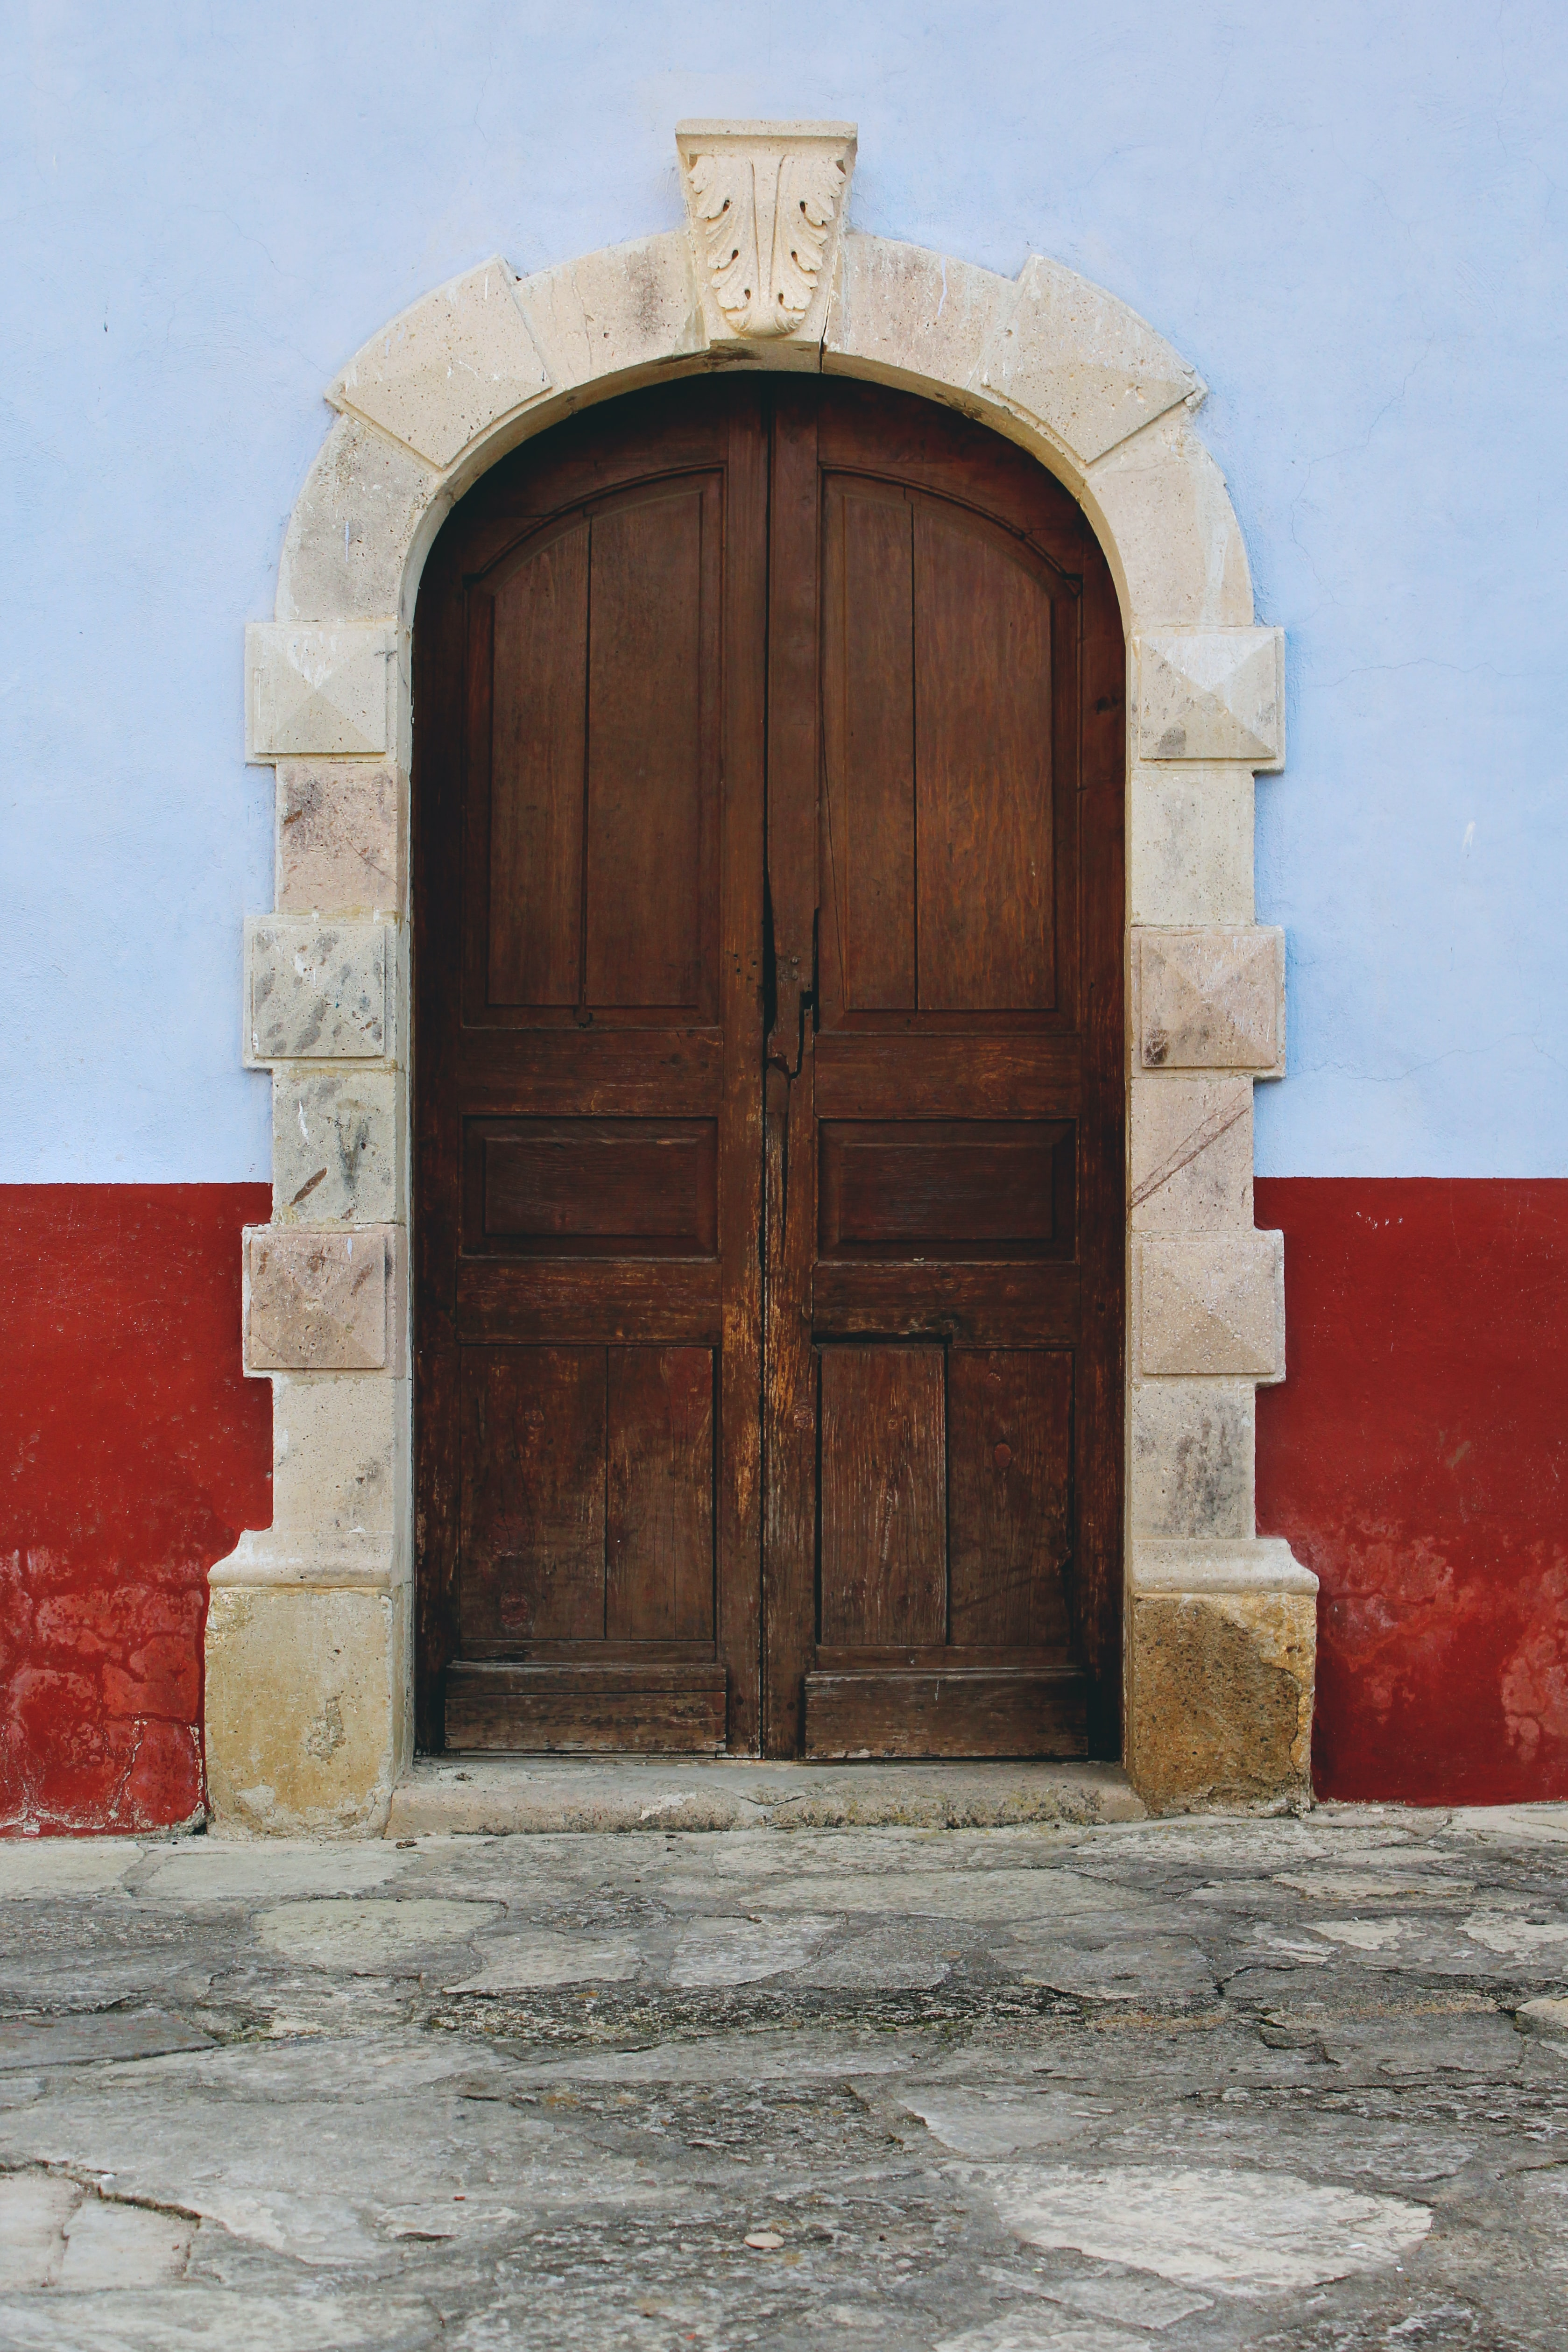 Large domed wooden door with white stones on the border and a red and blue wall flanking it on a stone street